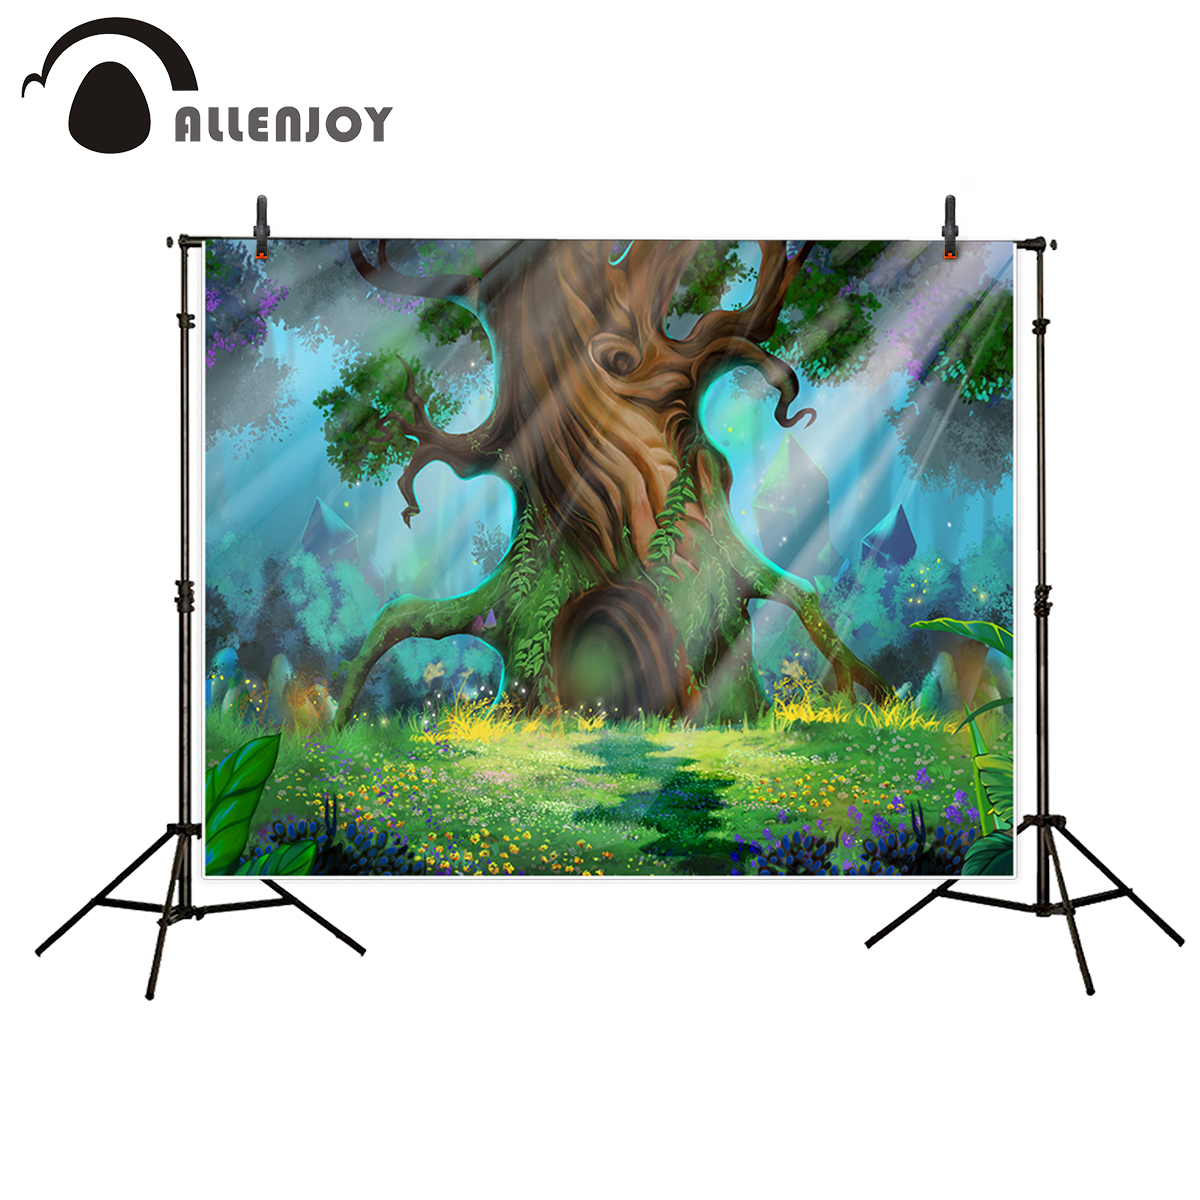 Allenjoy photography backdrop Fairy tale style big tree Lawn flower Wizard of the Sen background photo studio camera fotografica olga kholodova chloe the tale of a dead flower